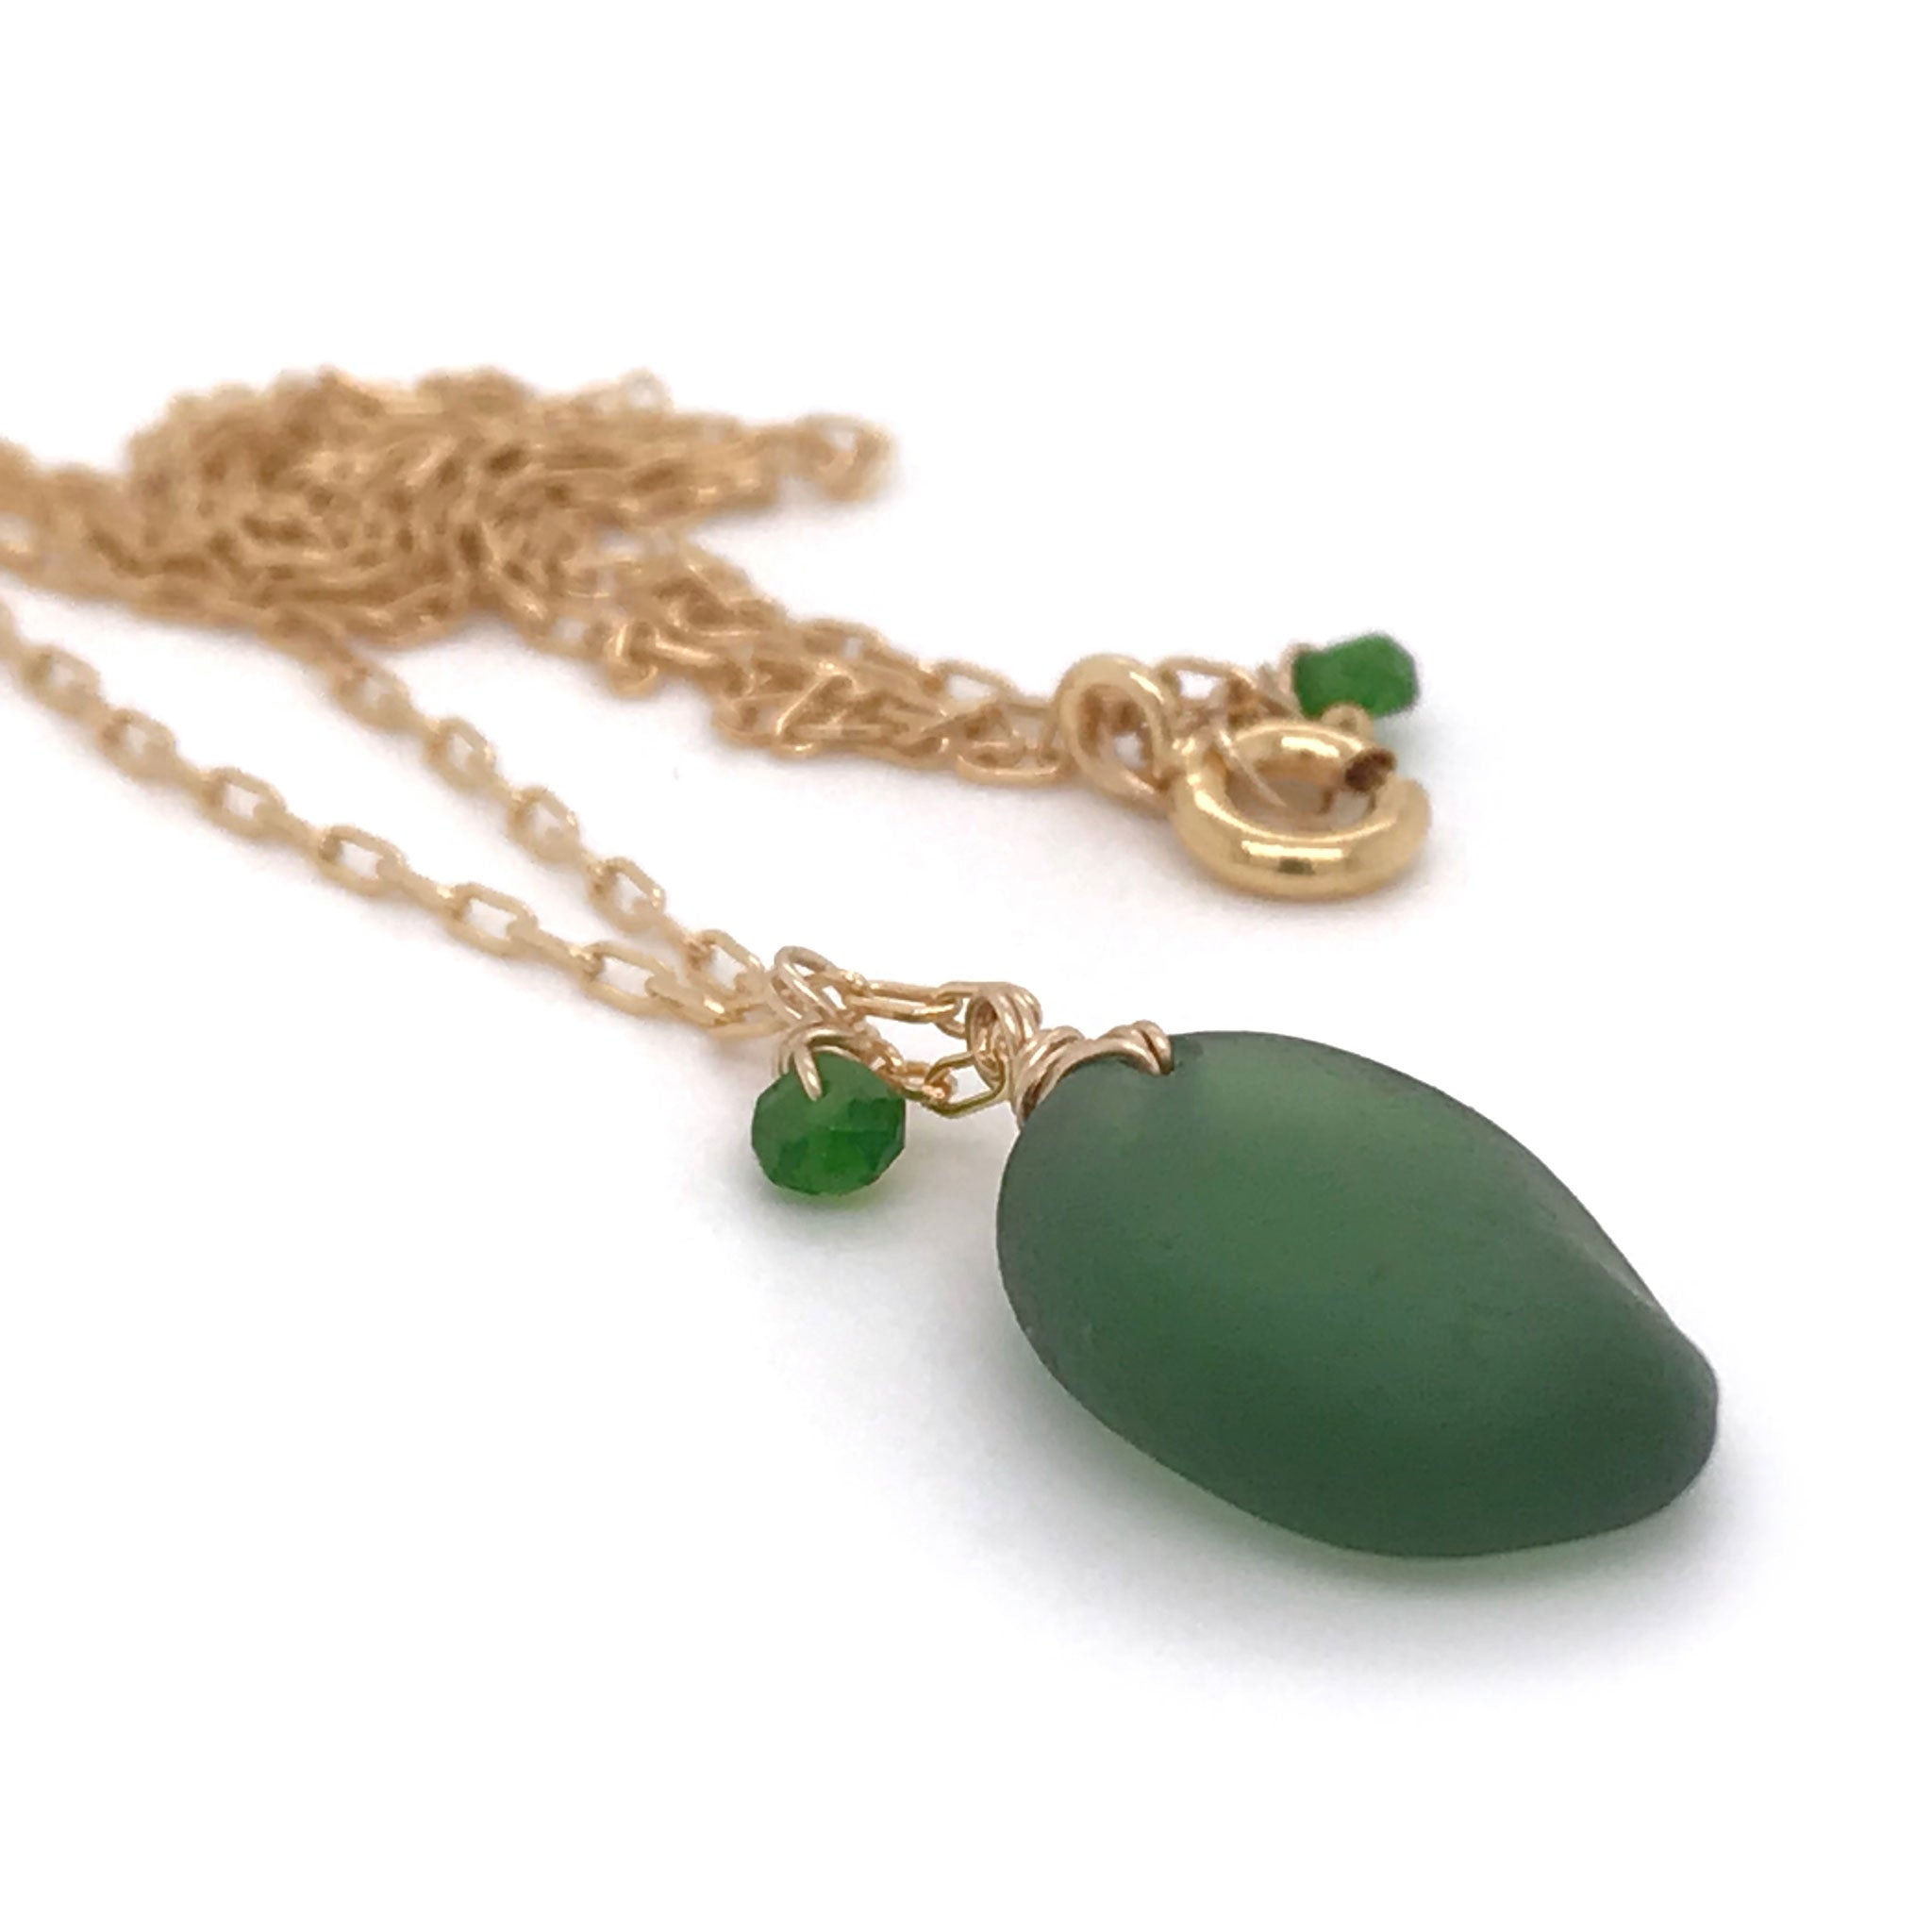 green seaglass necklace with tsavorite stones on gold chain kriket Broadhurst jewelry